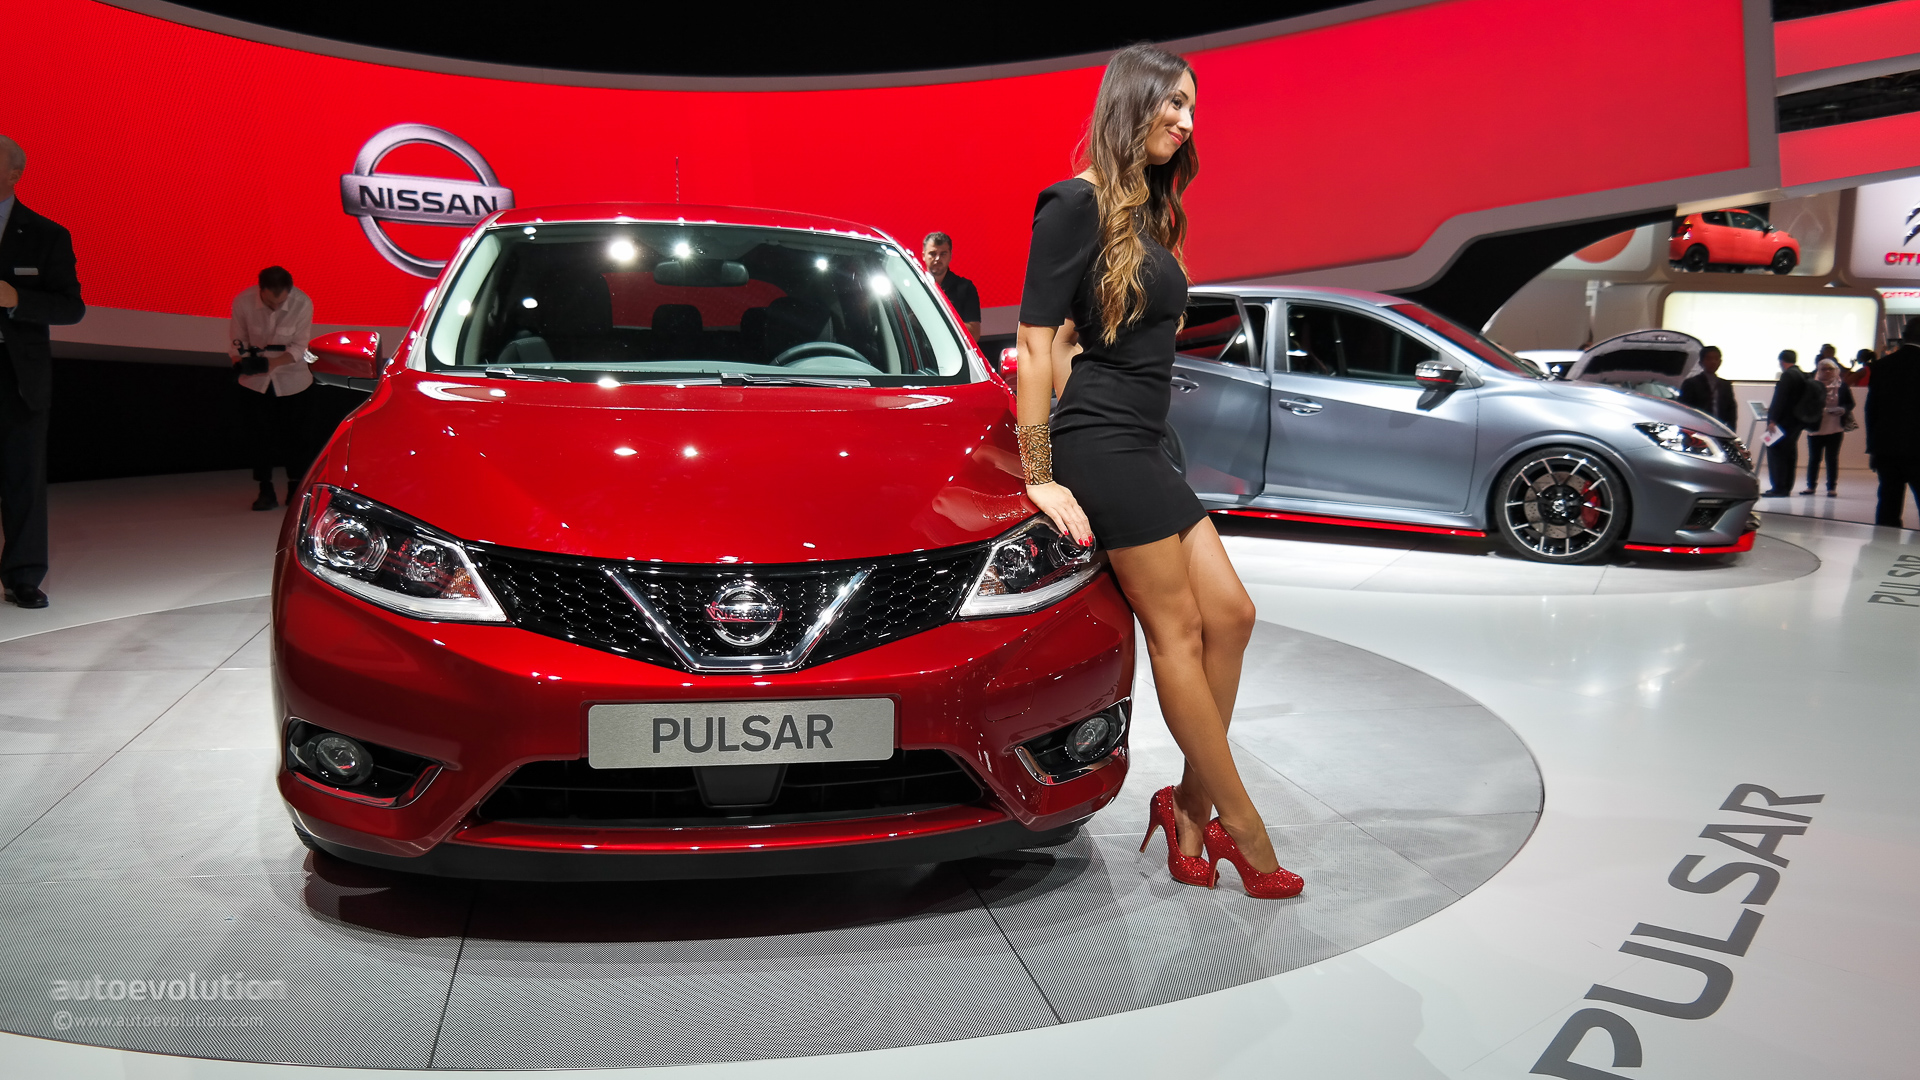 nissan pulsar completes the company s line up at paris. Black Bedroom Furniture Sets. Home Design Ideas